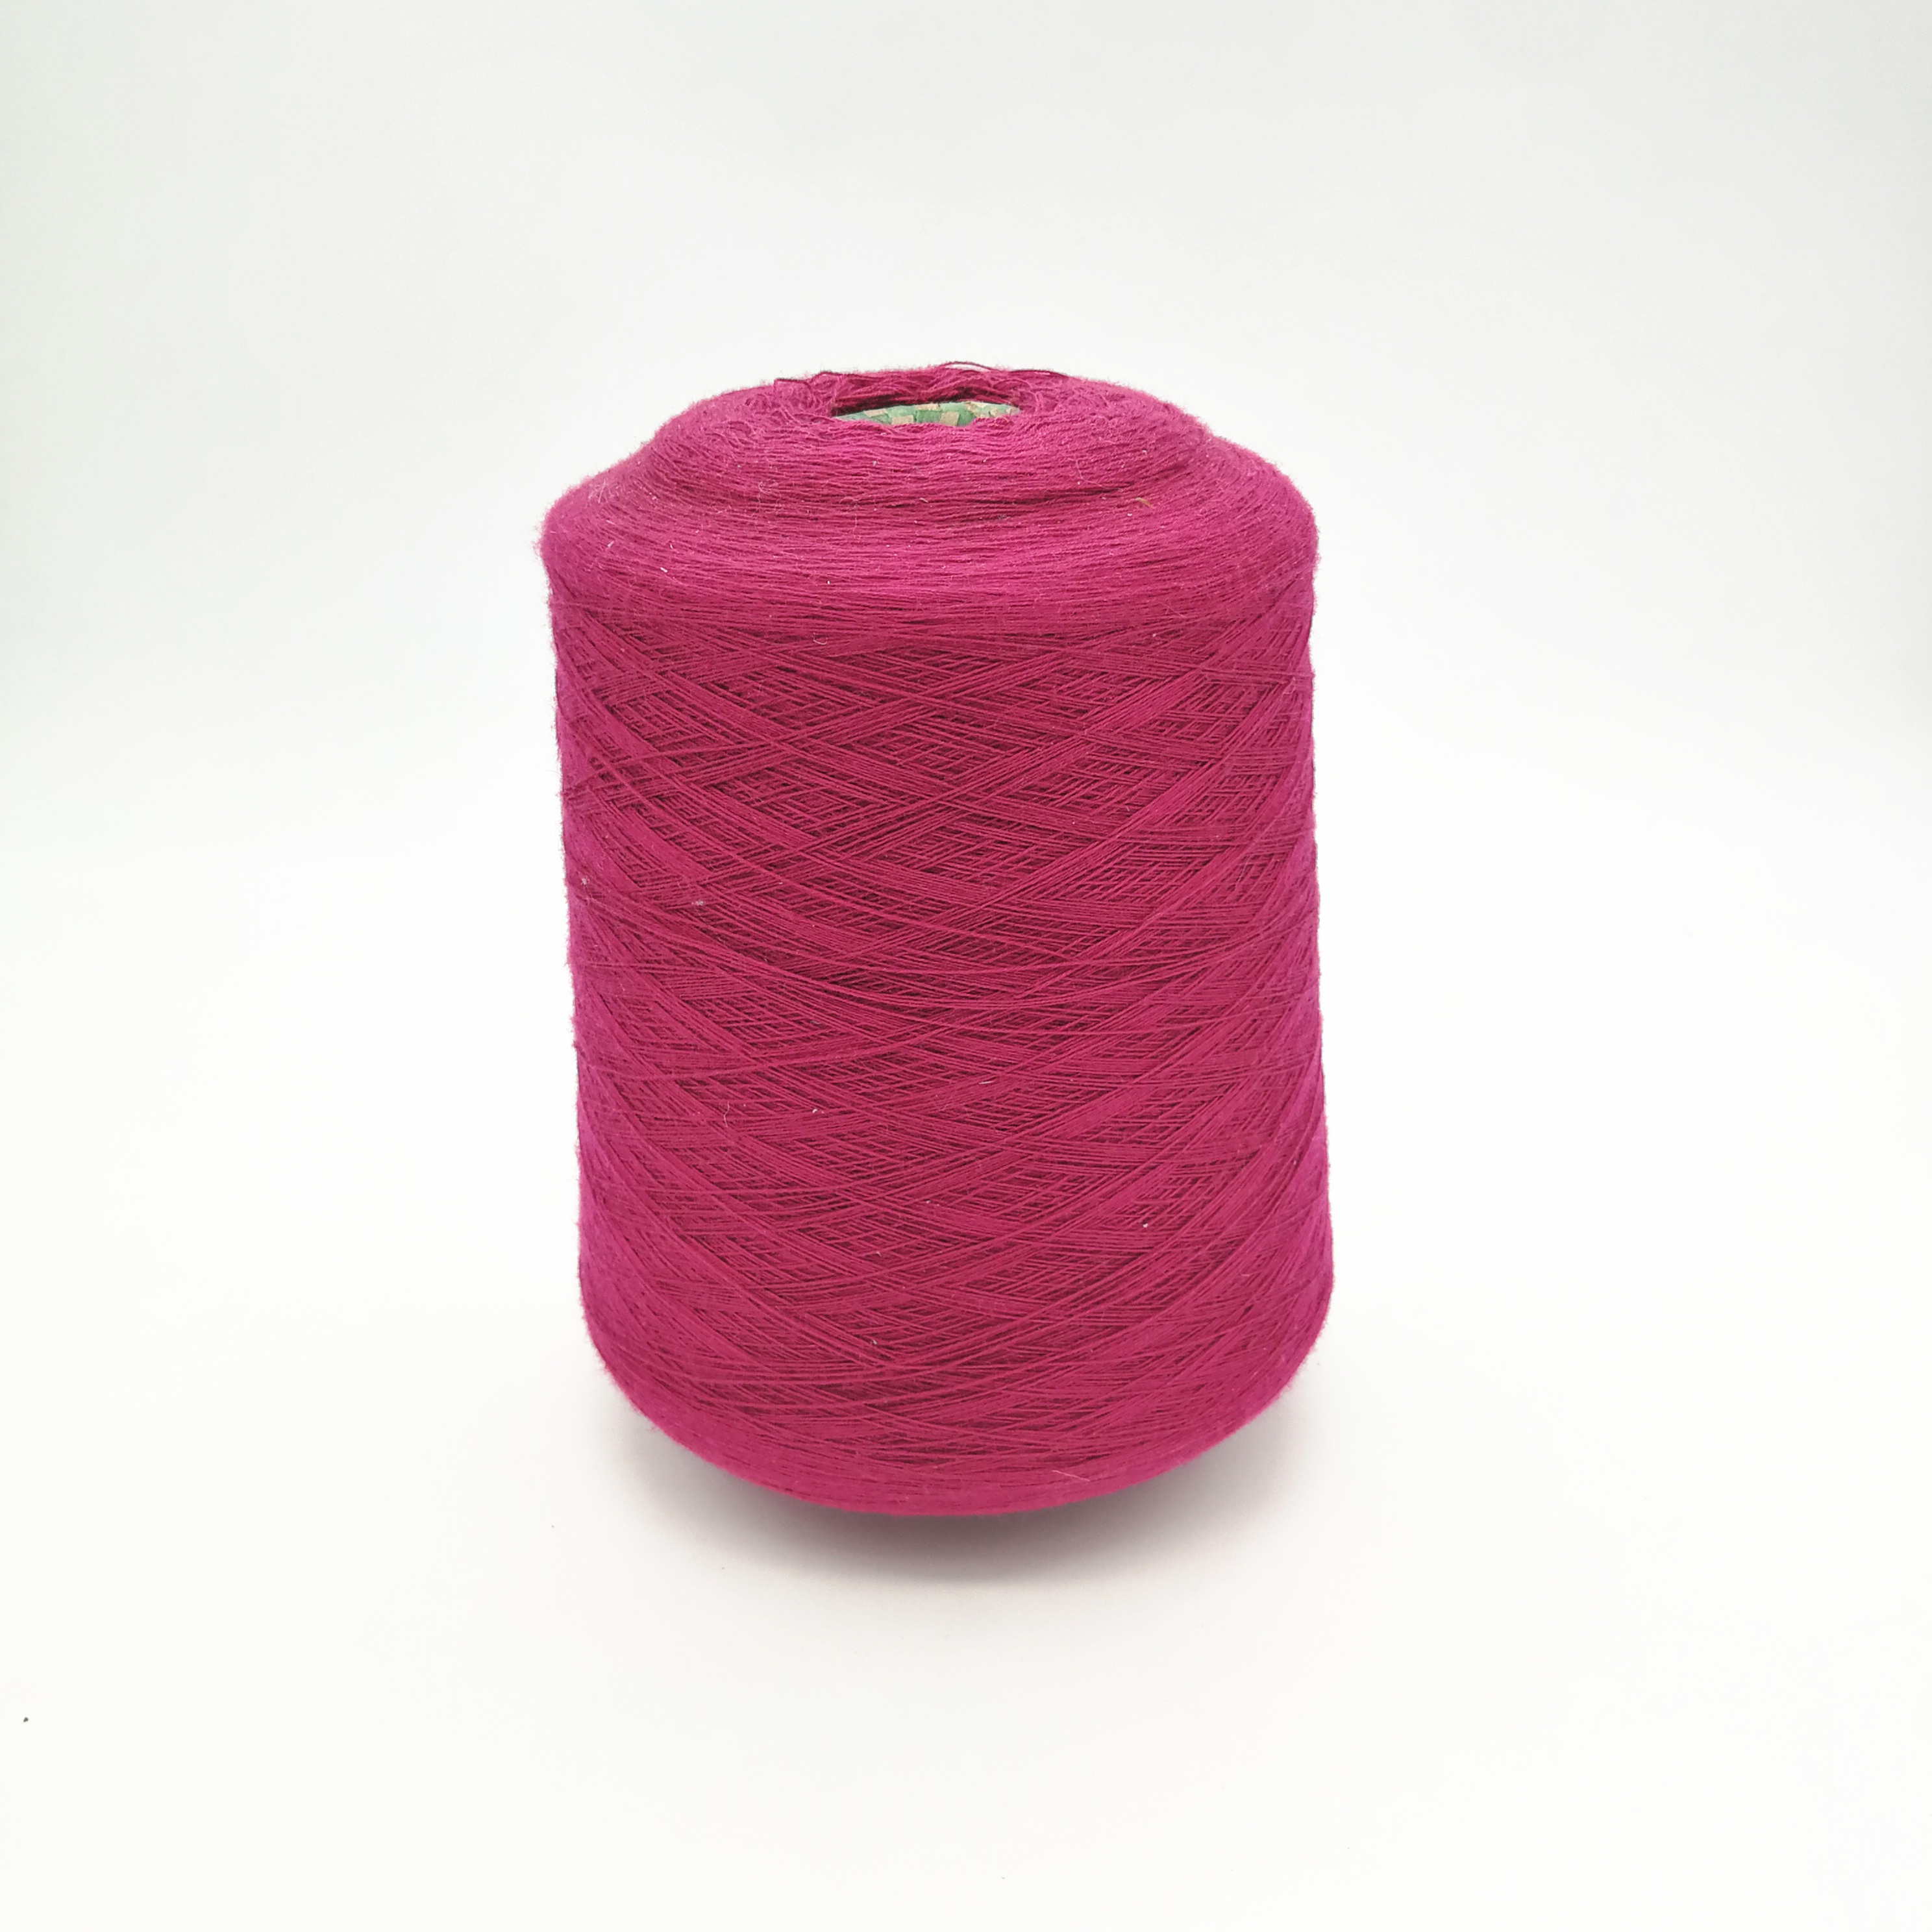 Hot sale dyed colorful viscose acrylic blended spun yarn for knitting and weaving with good price